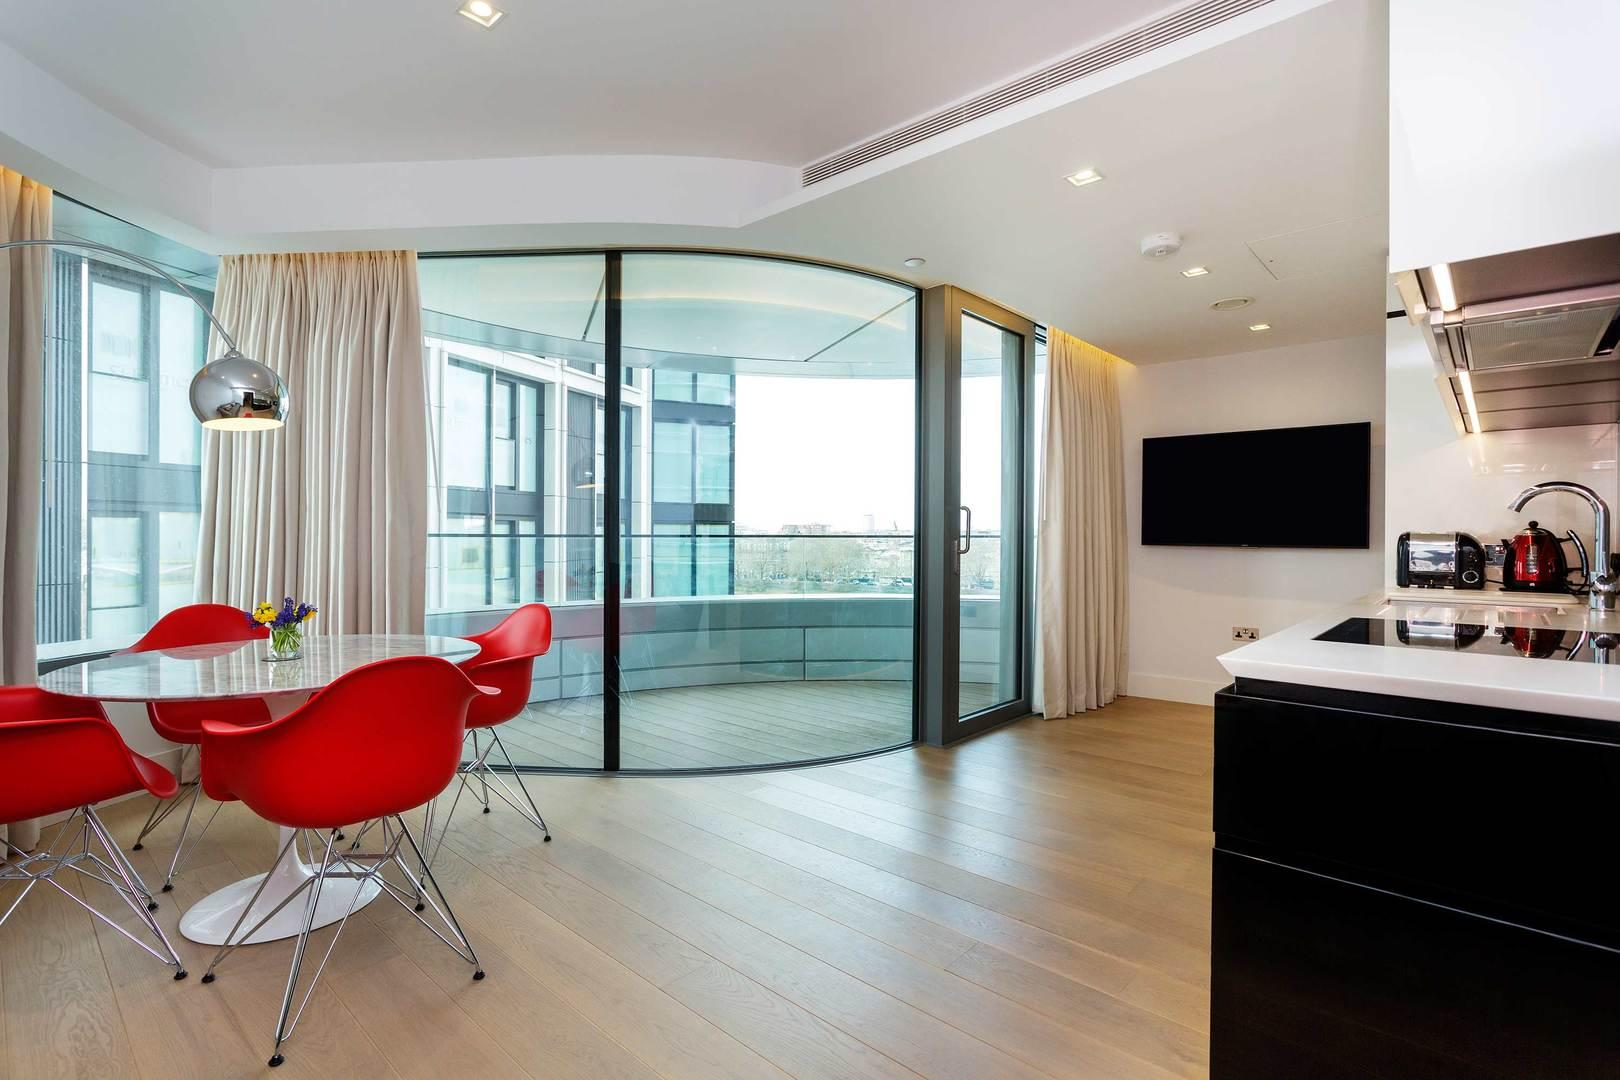 Property Image 2 - Modern Chic Riverside Apartment with Panoramic Views